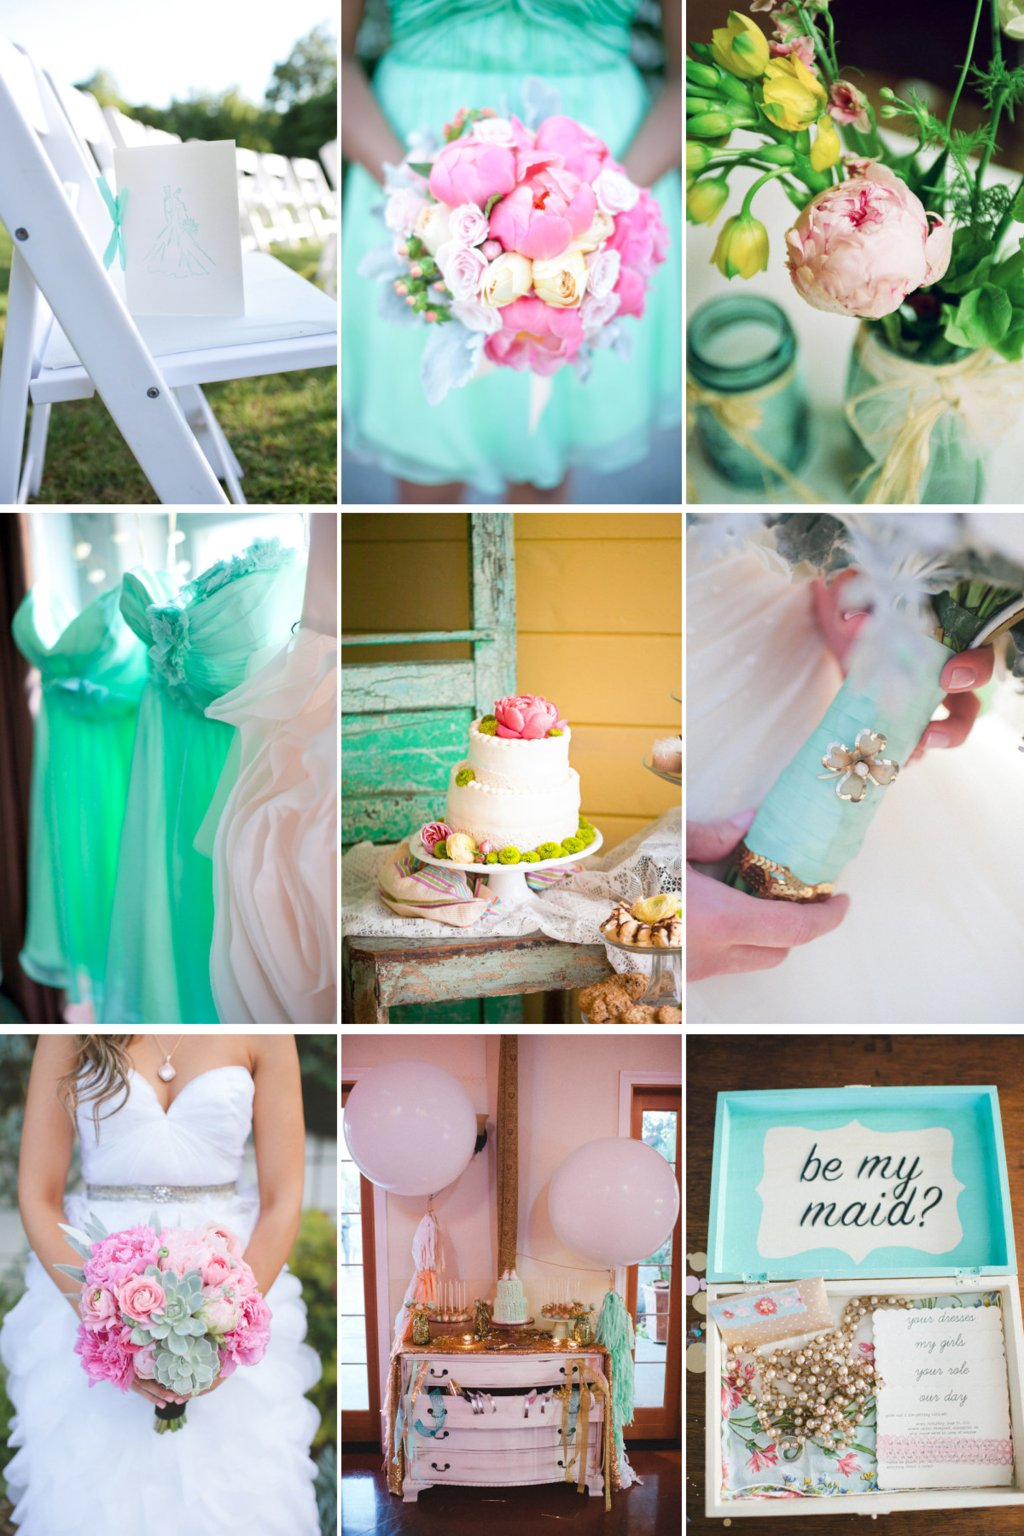 Teal-and-peony-pink-wedding-color-inspiration.full